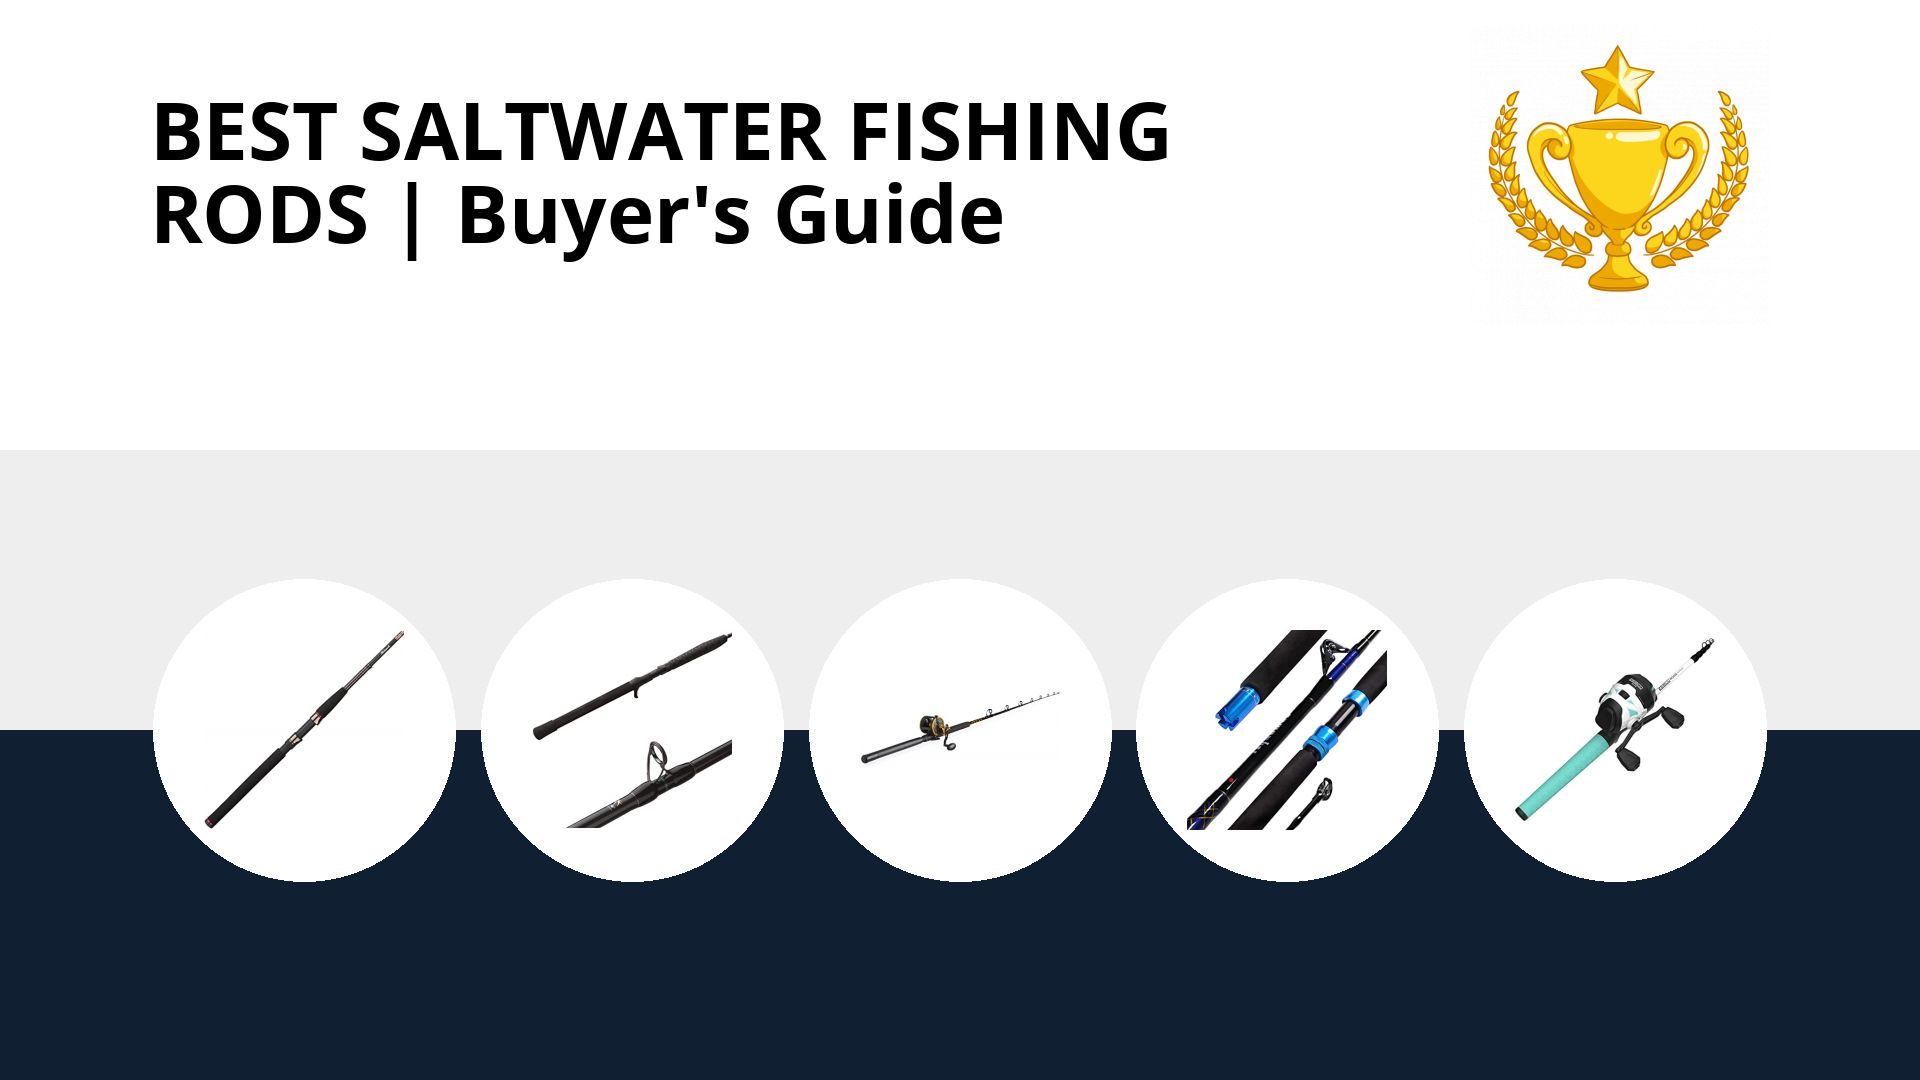 Best Saltwater Fishing Rods: image